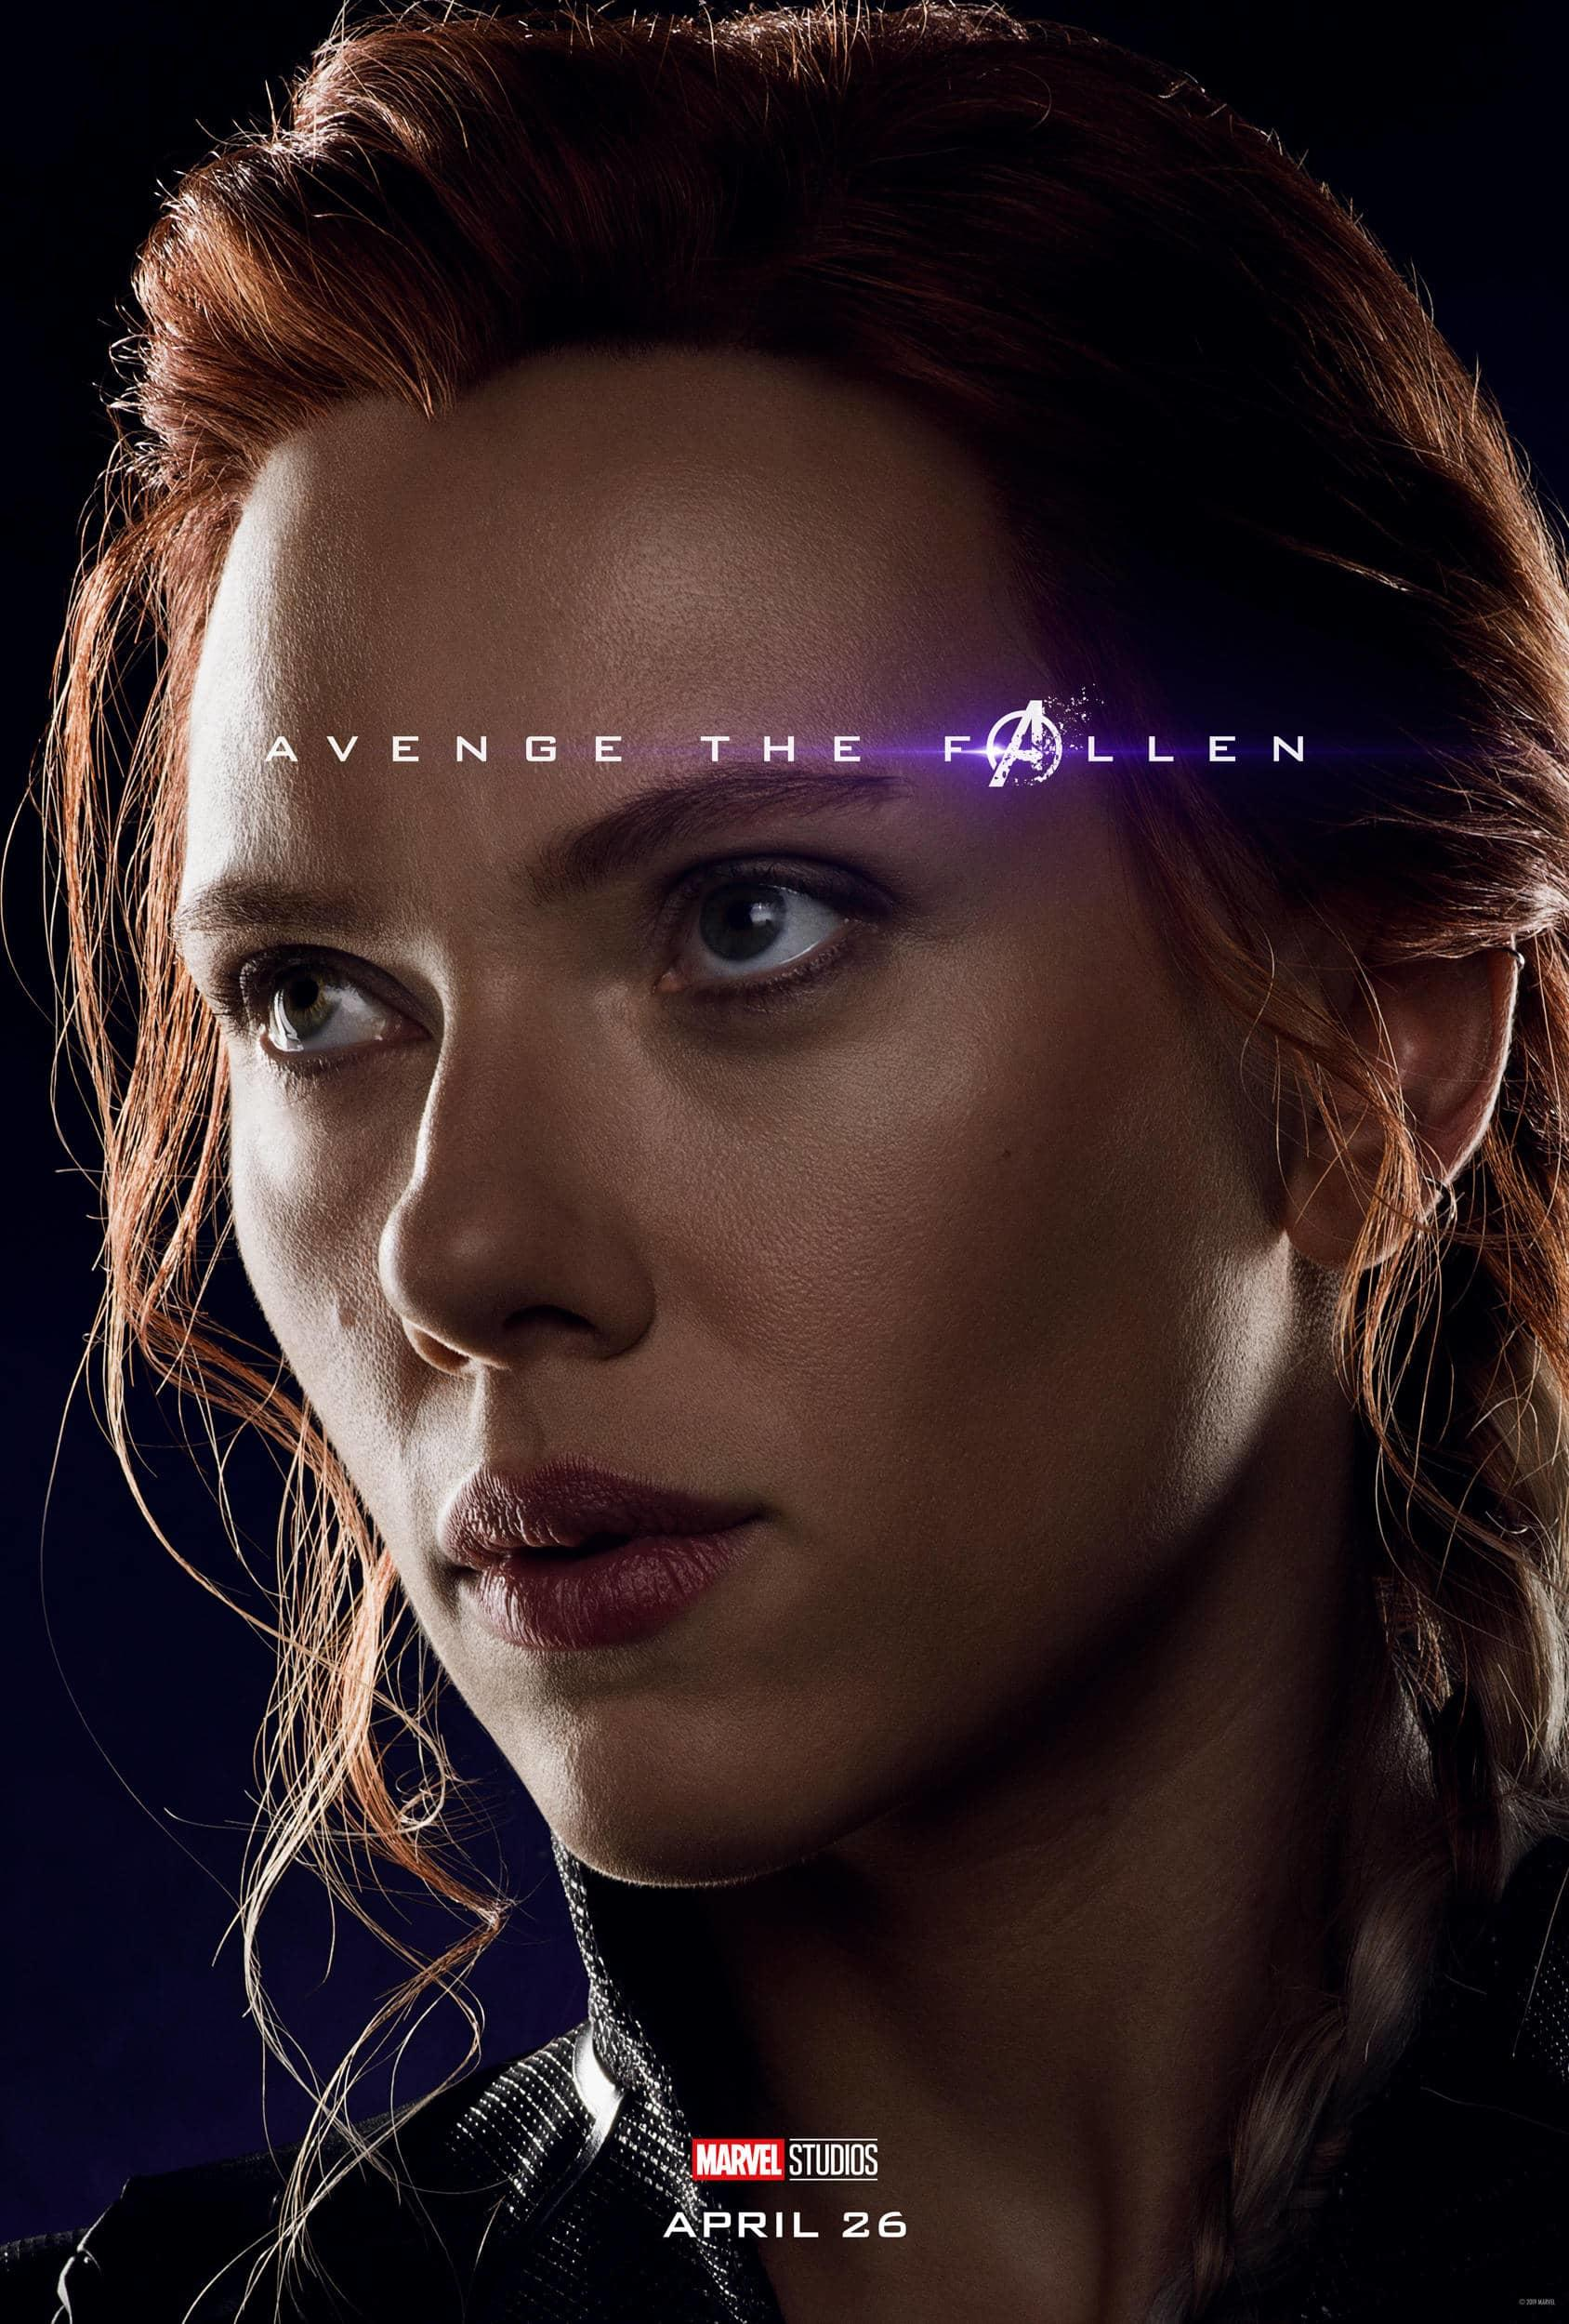 Marvel Studios' Avengers: Endgame Movie Cast Black Widow (Natasha Romanoff) Scarlett Johansson